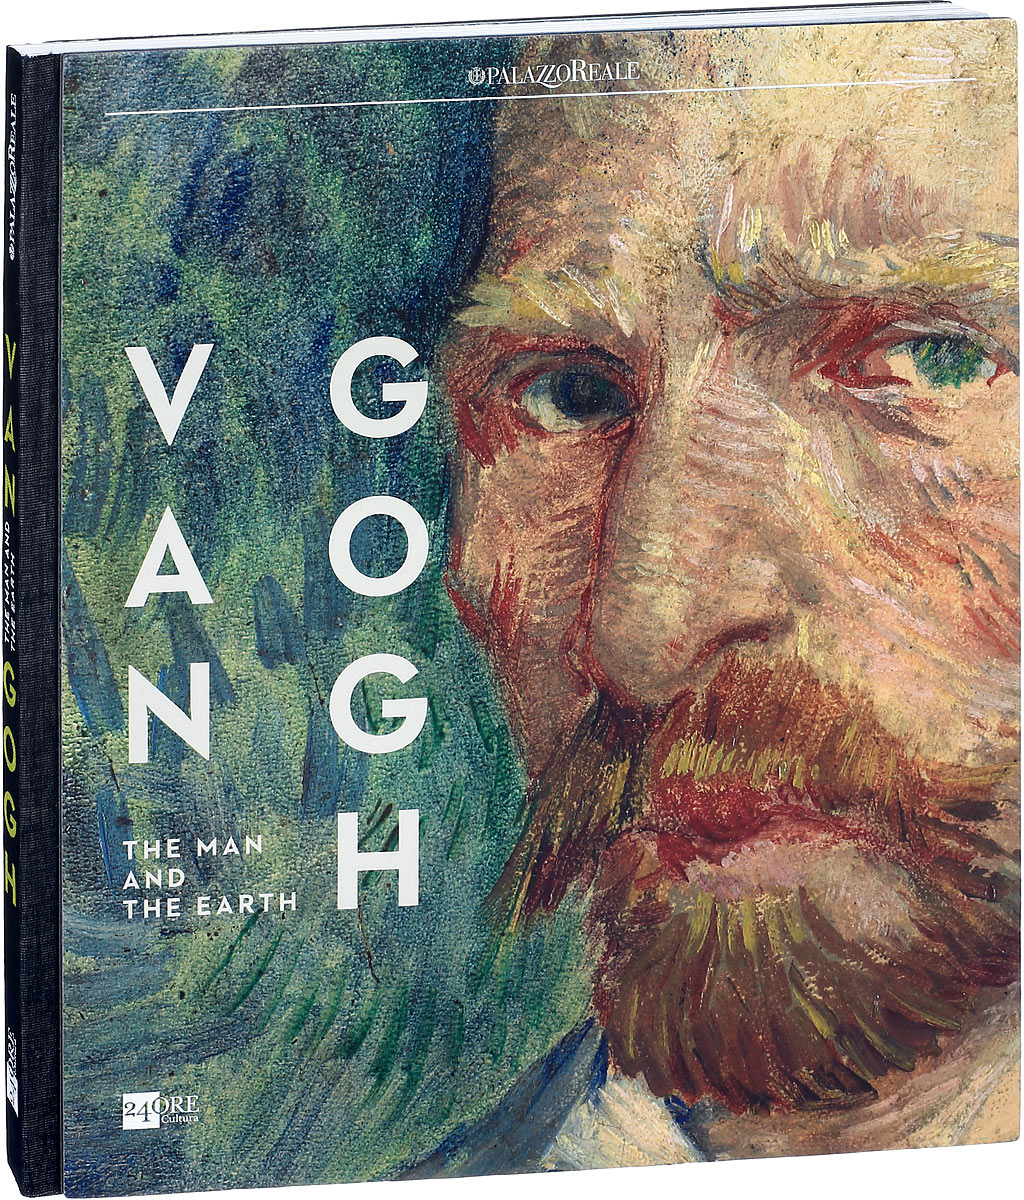 Van Gogh: The Man and the Earth ernst jan van prooye the netherlands 2028